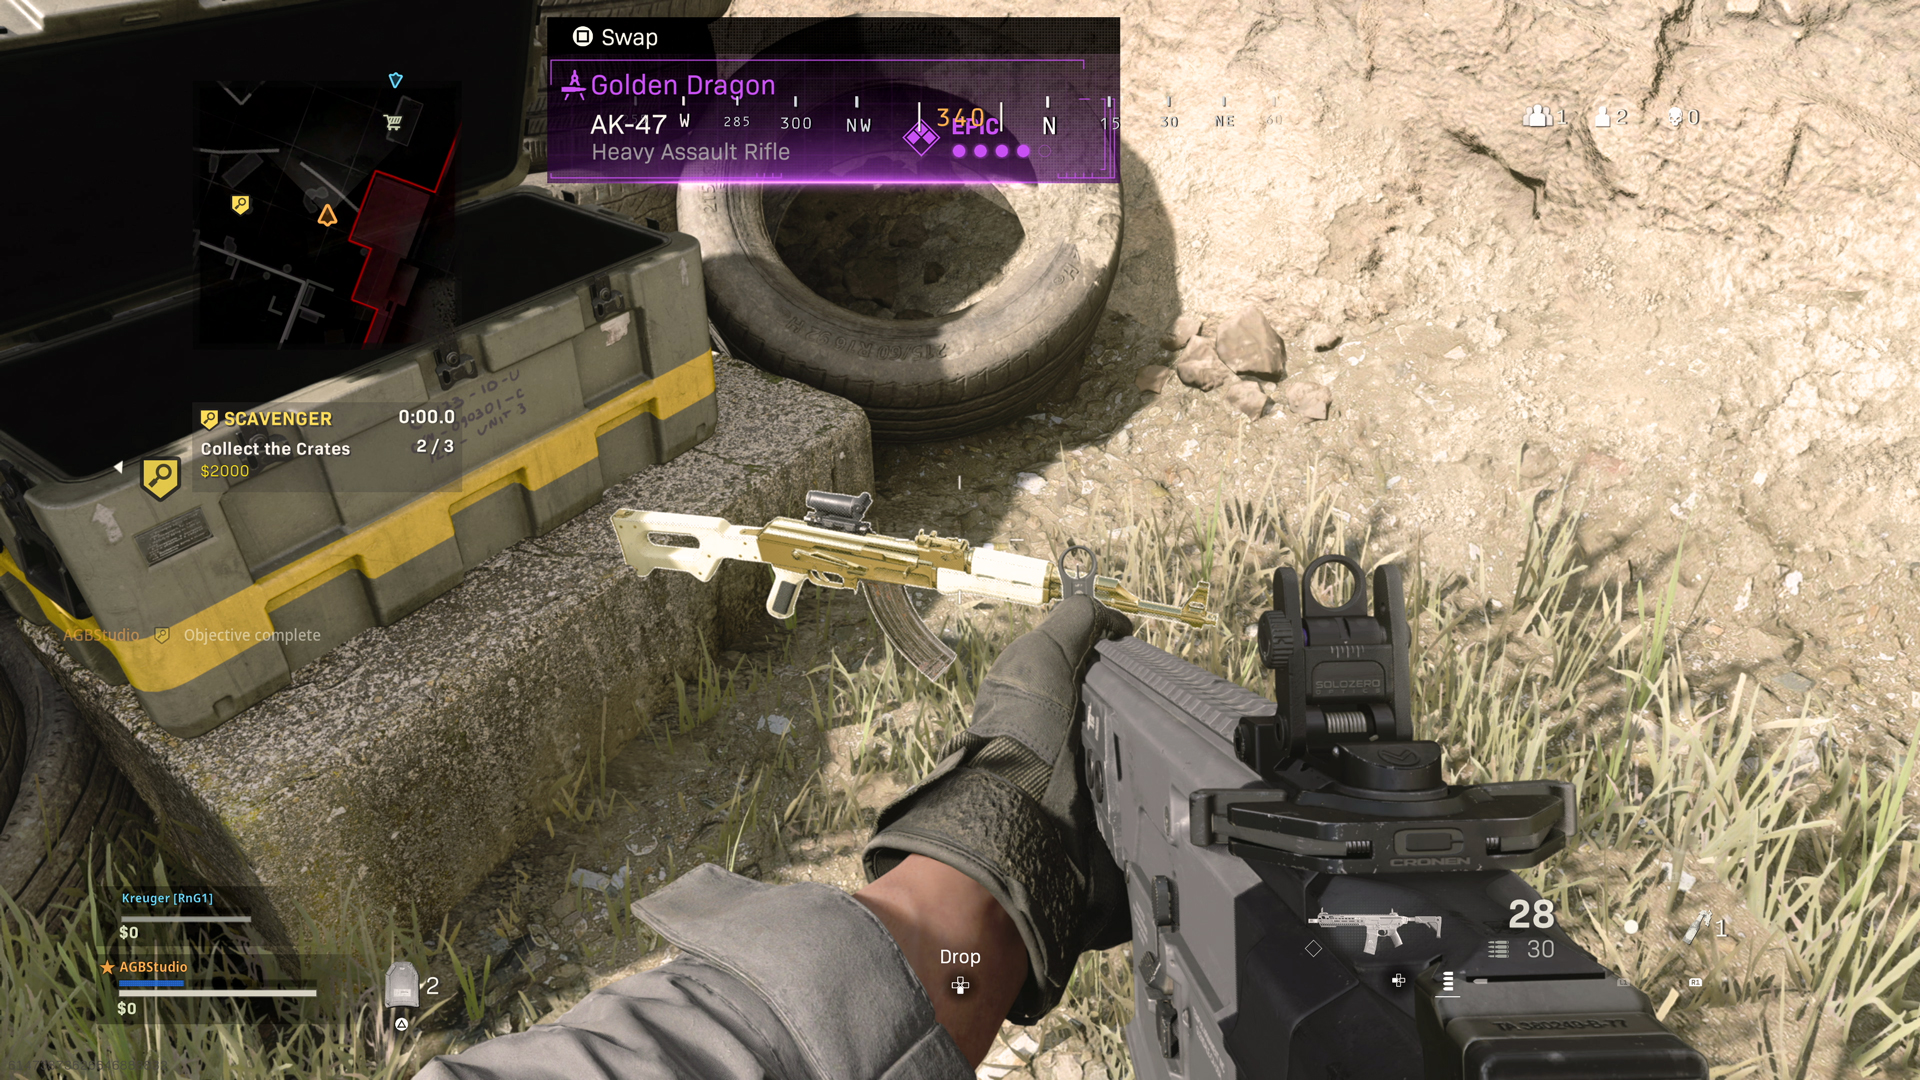 "A hand holding a rifle points at a highlighted rifle on the ground. A heads up display shows a rifle and 28/30 rounds. A directional pad symbol is displayed at the bottom of the screen with the word ""drop,"" and the top directional button highlighted. A purple box above the rifle features a square symbol with the word ""swap"" and a description: ""Golden Dragon, AK-47 Heavy Assault Rifle."" An open supply crate lays on the ground next to the AK-47 with a hovering text box. There is a magnifying glass symbol with the word ""Scavenger"" next to it, followed by ""Collect the Crates 2/3, $2000."